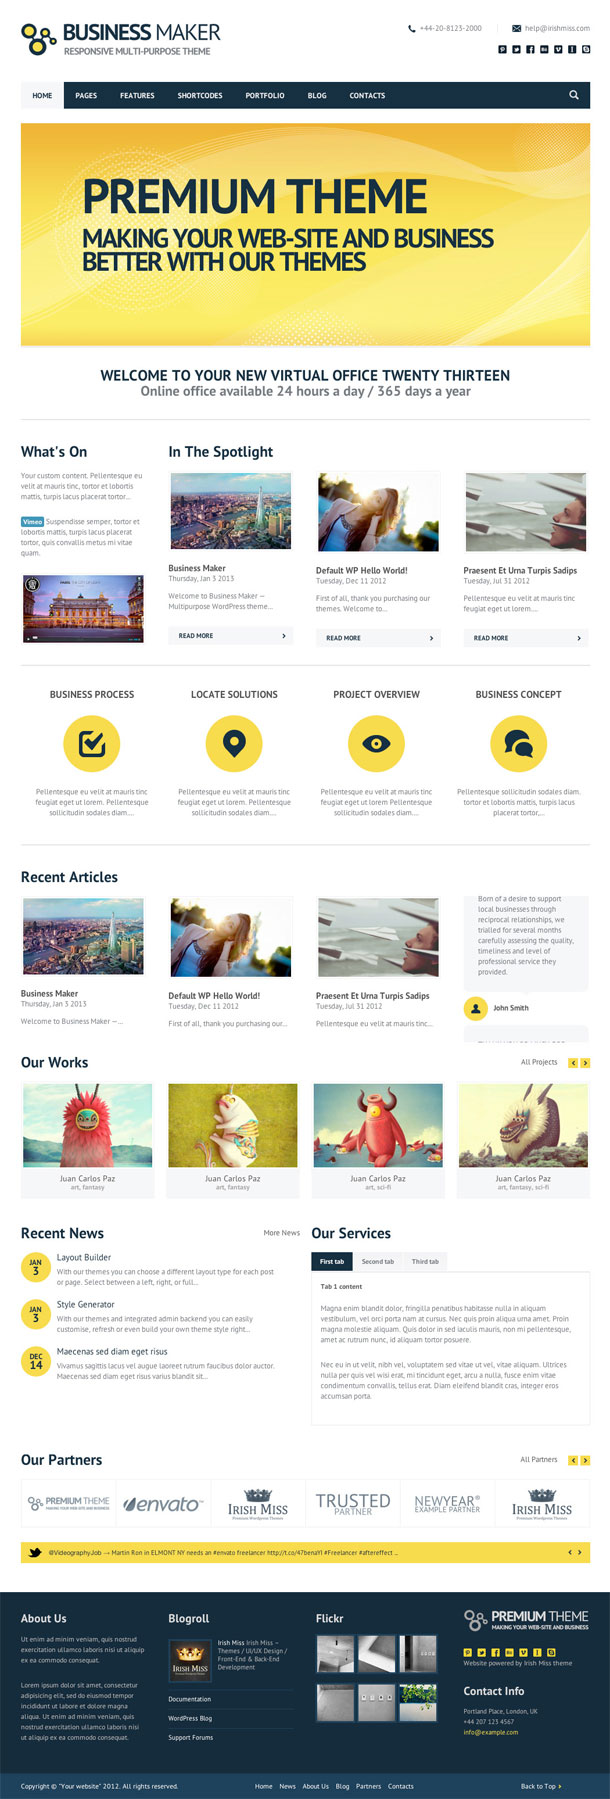 Business Maker Retina Theme Image